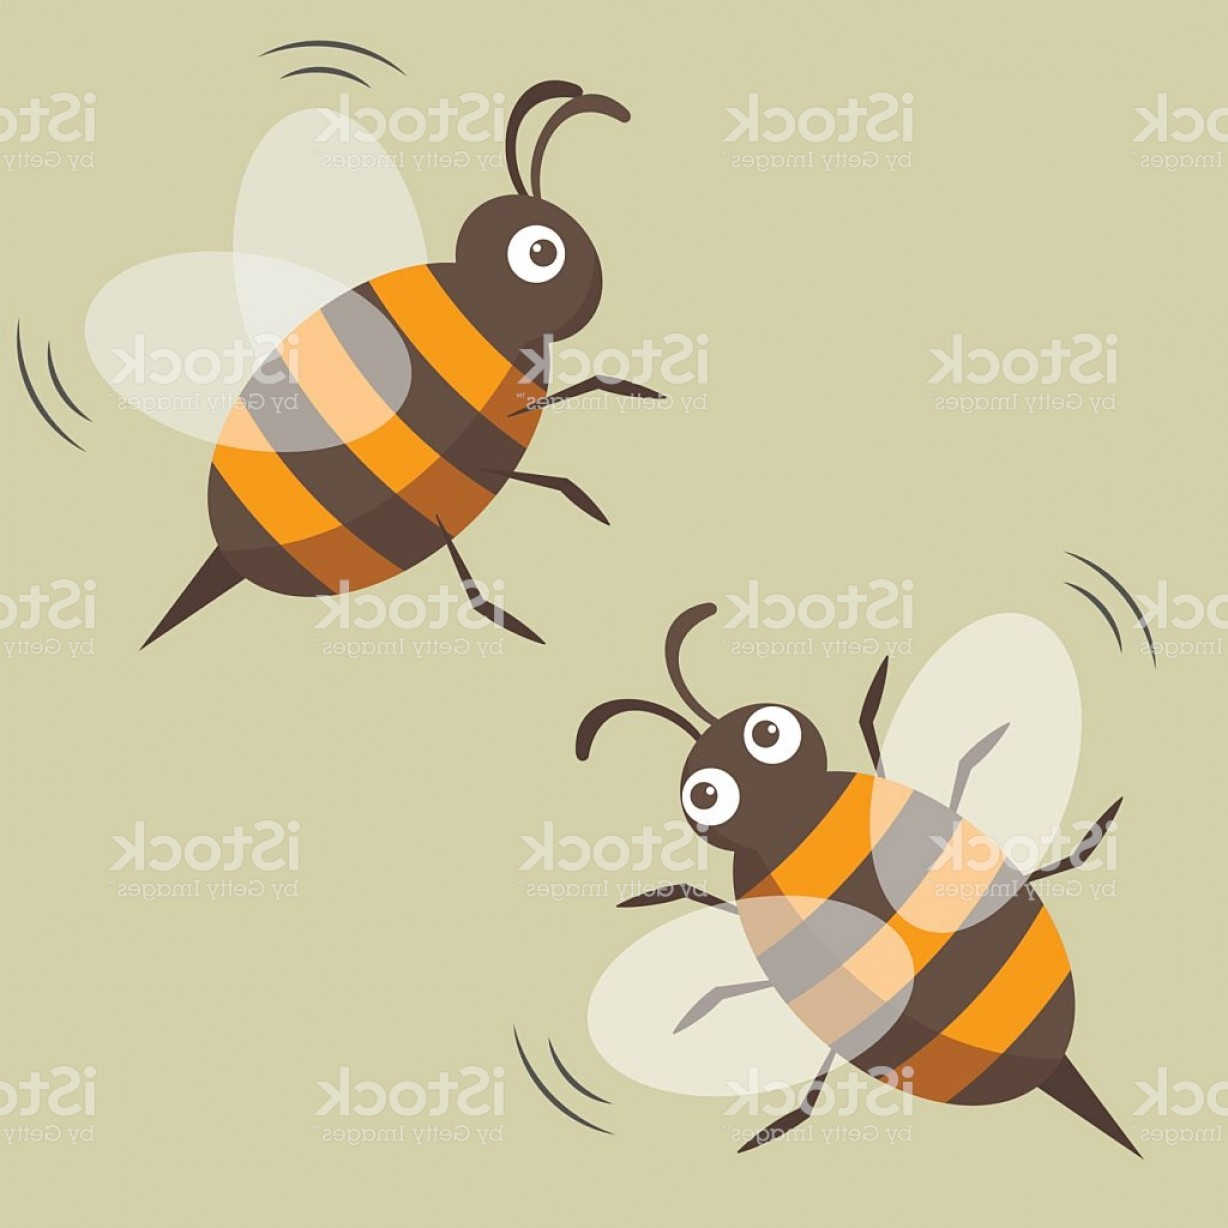 Bee Stinger Back Vector Art: Two Bees Isolated Vector Picture Cartoon Style Gm